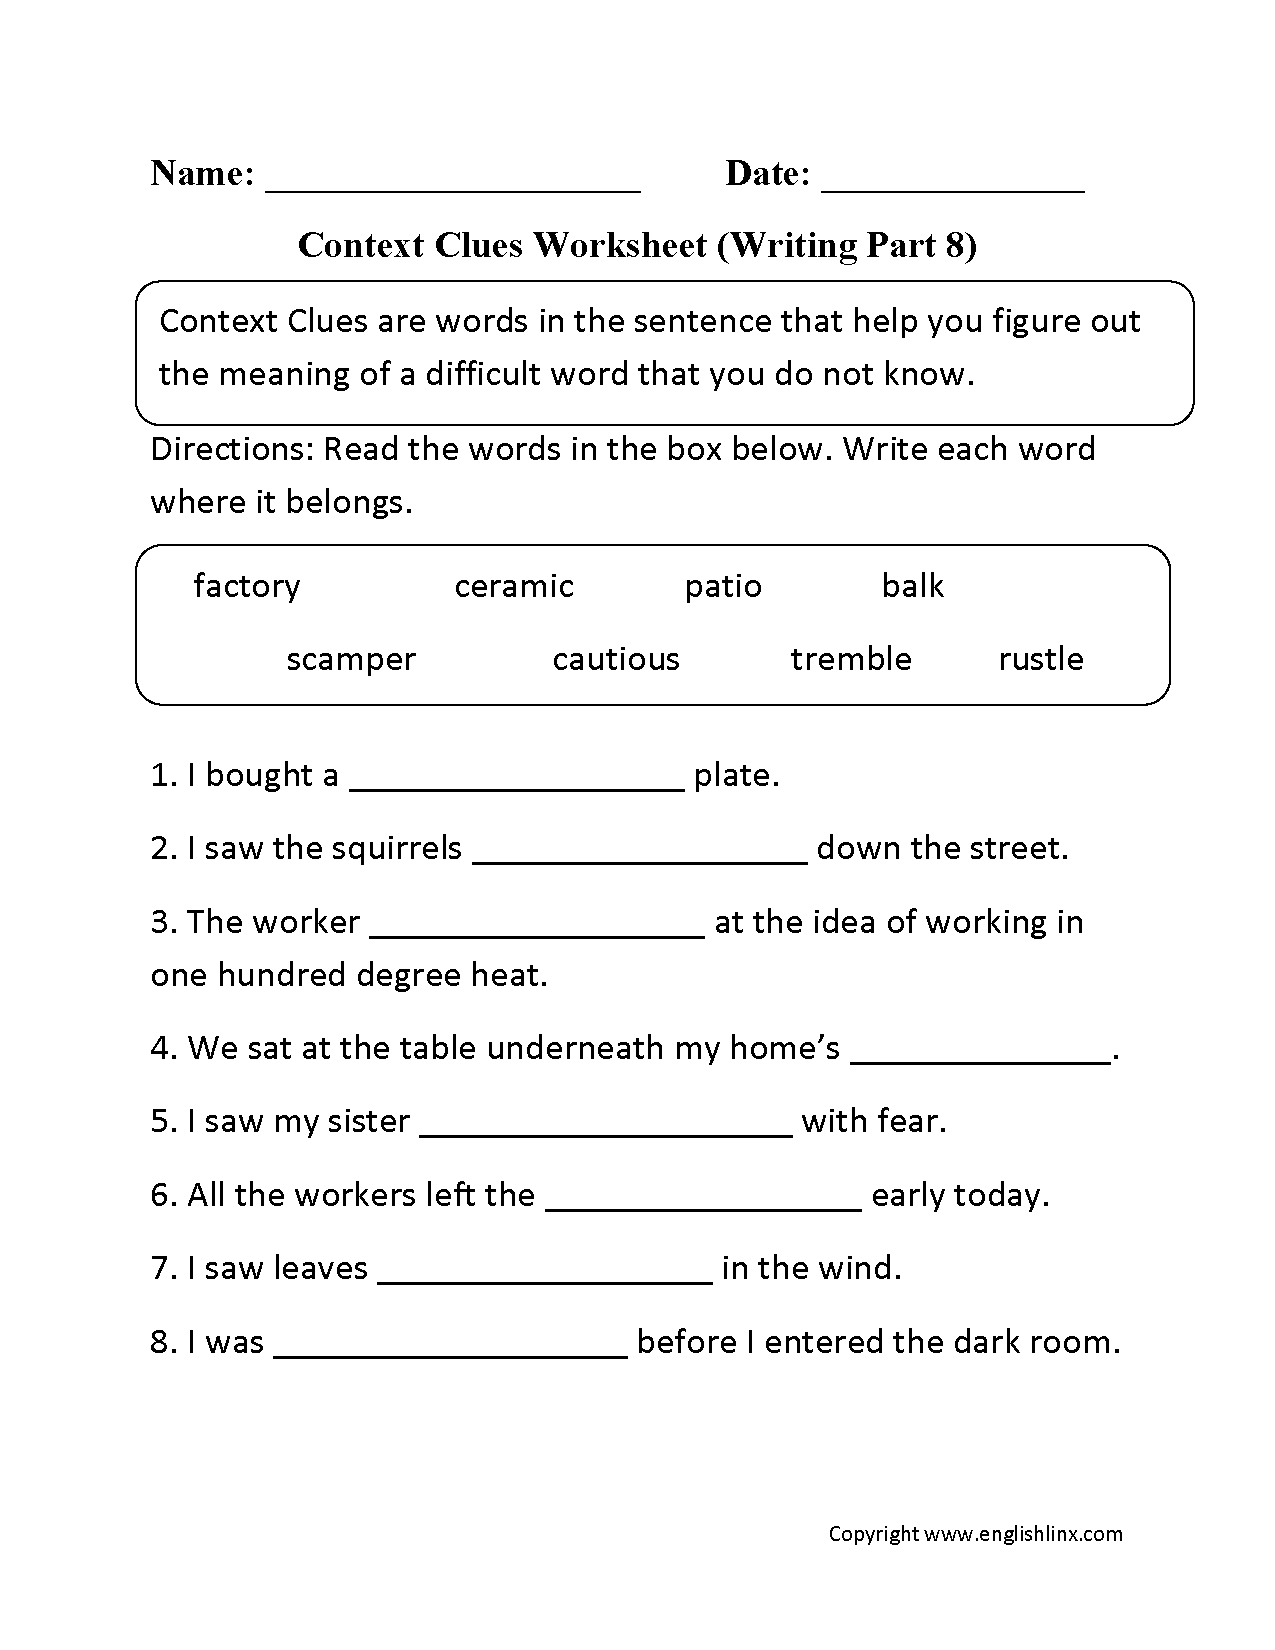 Worksheets Using Context Clues Worksheets context clues warm ups printable worksheets from englishlinx worksheet writing part 9 intermediate